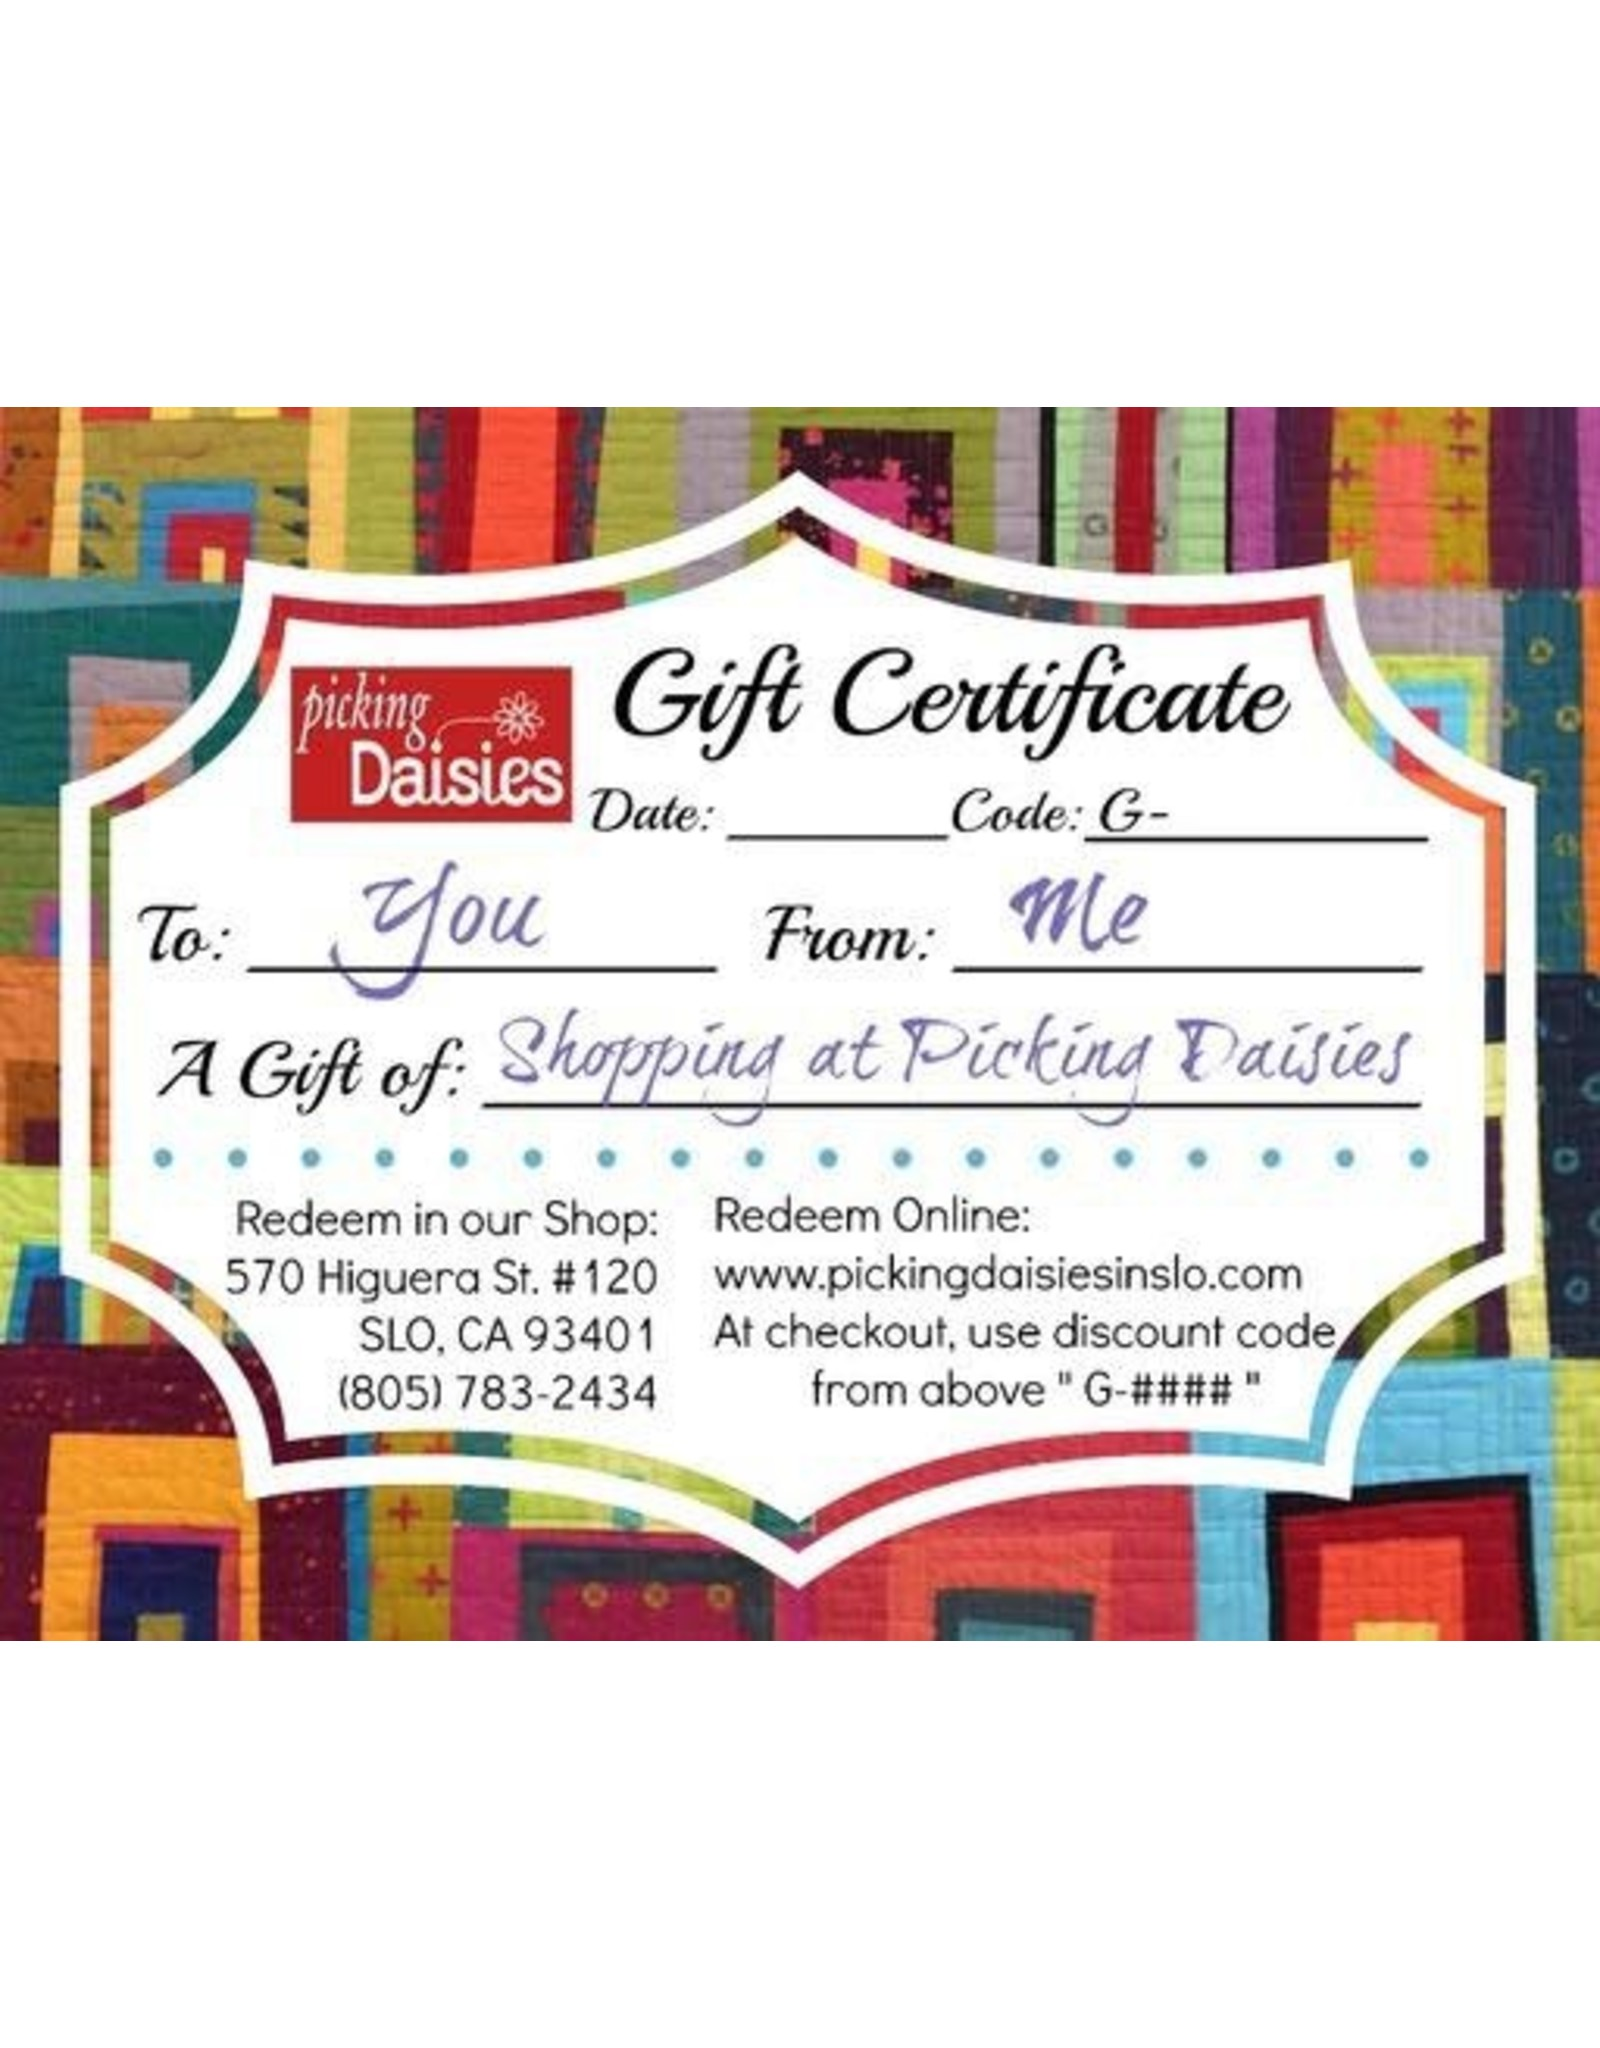 PD Gift Certificate - $25